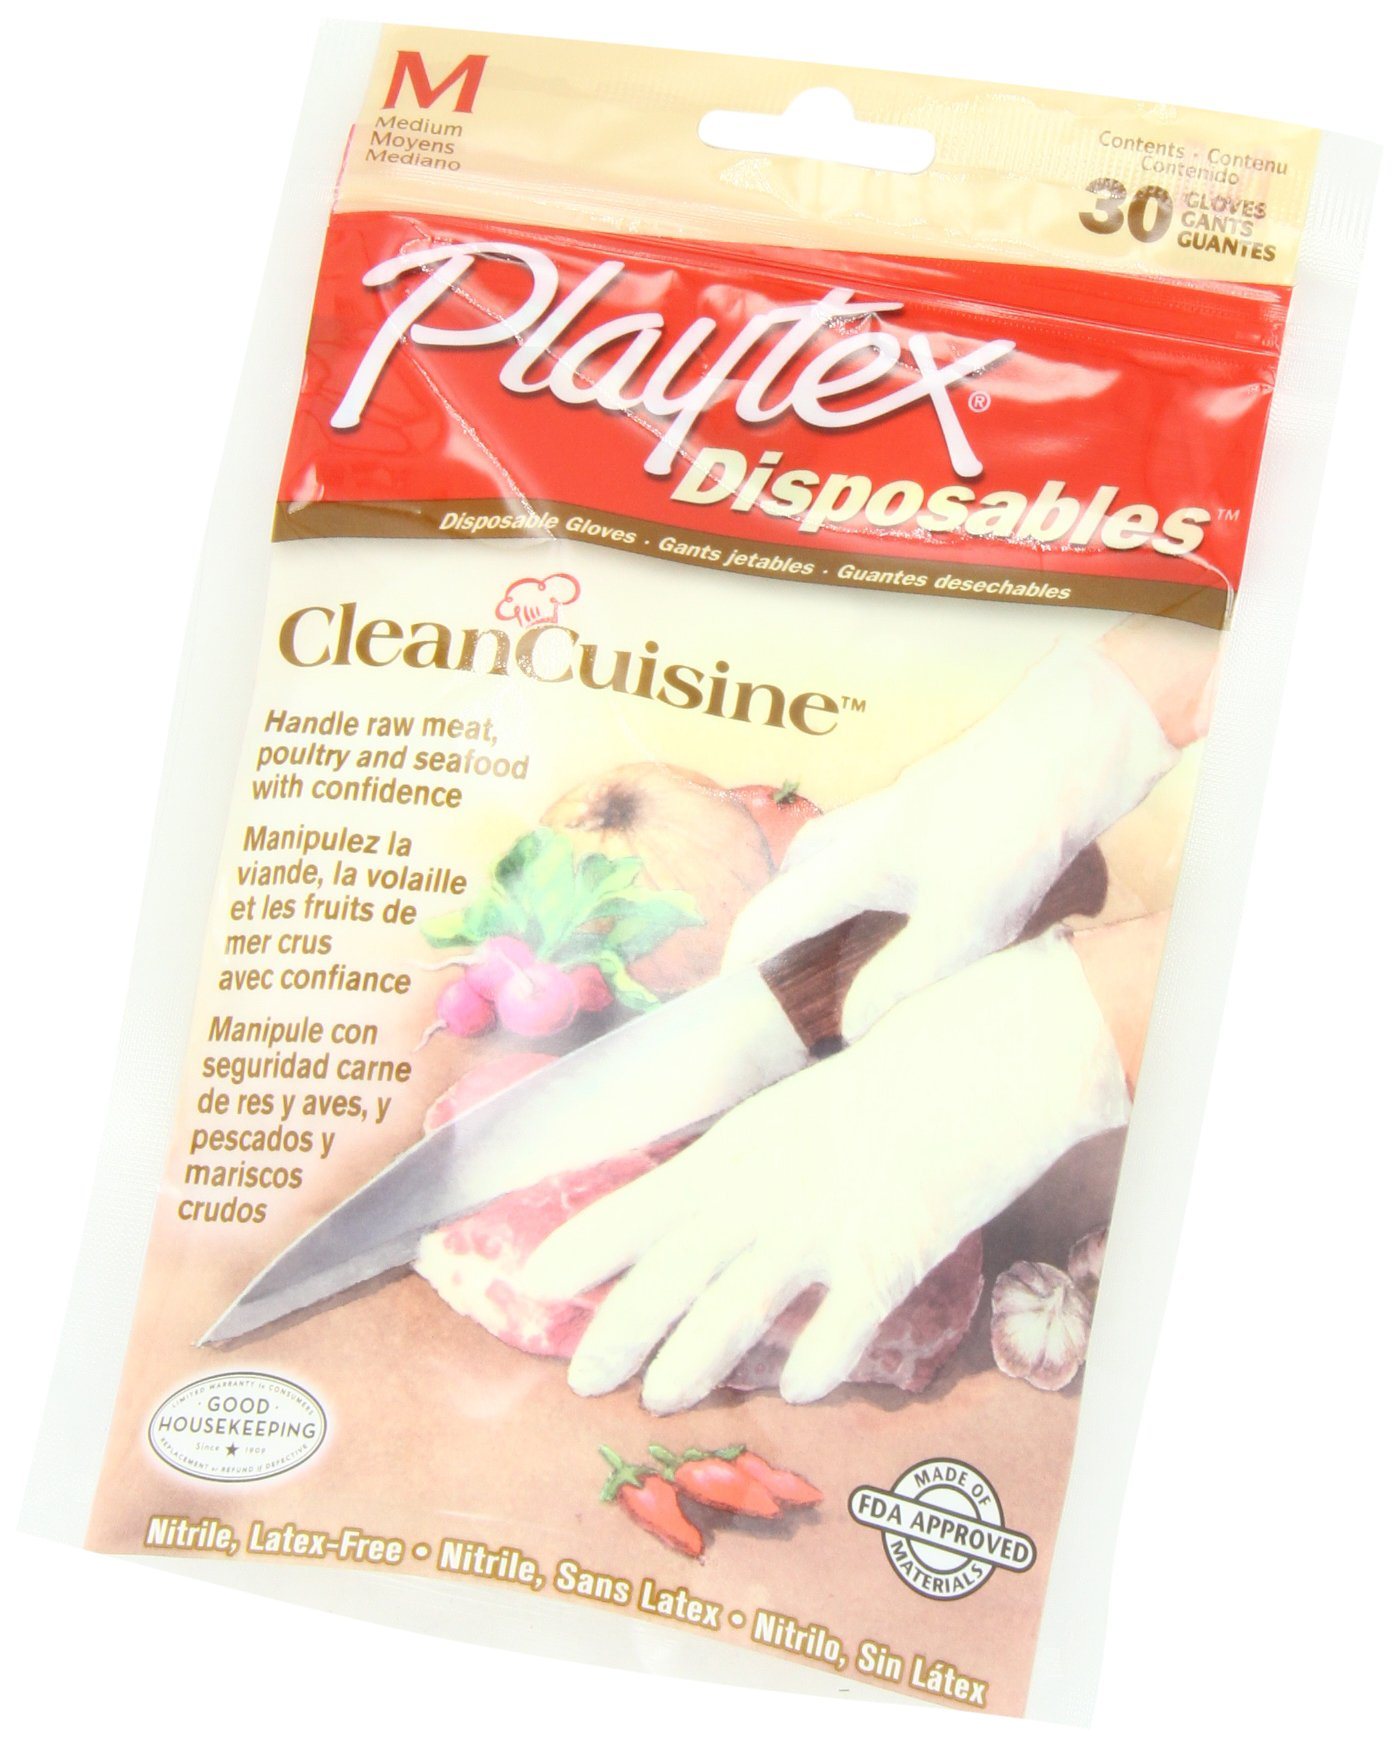 Playtex CleanCuisine Disposable Gloves Medium - 30-Count Package (Pack of 3) by Playtex (Image #3)